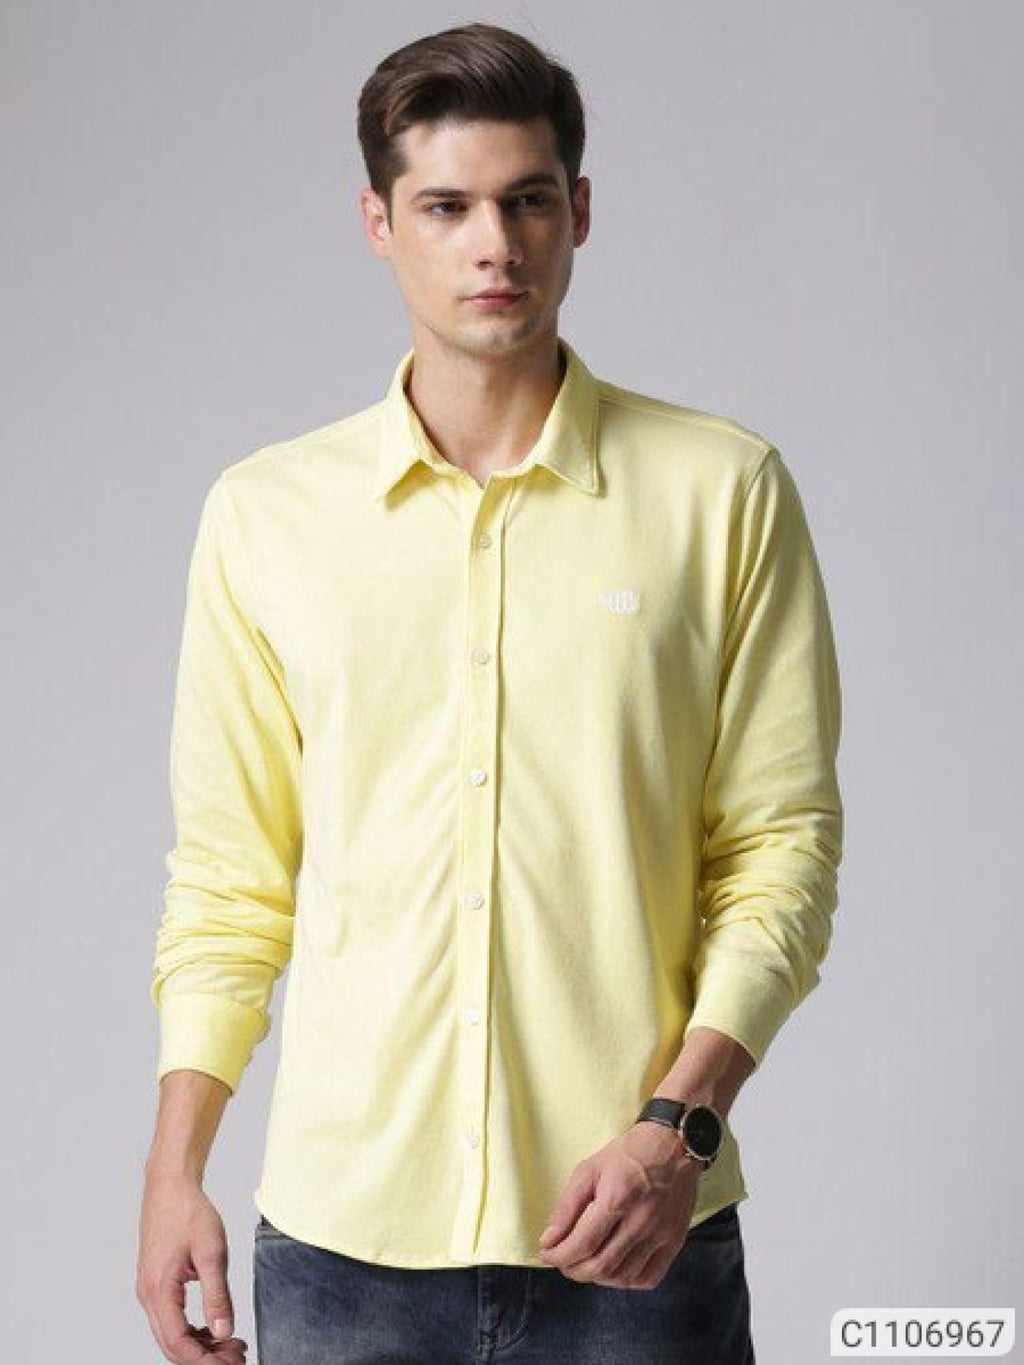 YWC Canary Yellow Classy Regular Fit Shirt